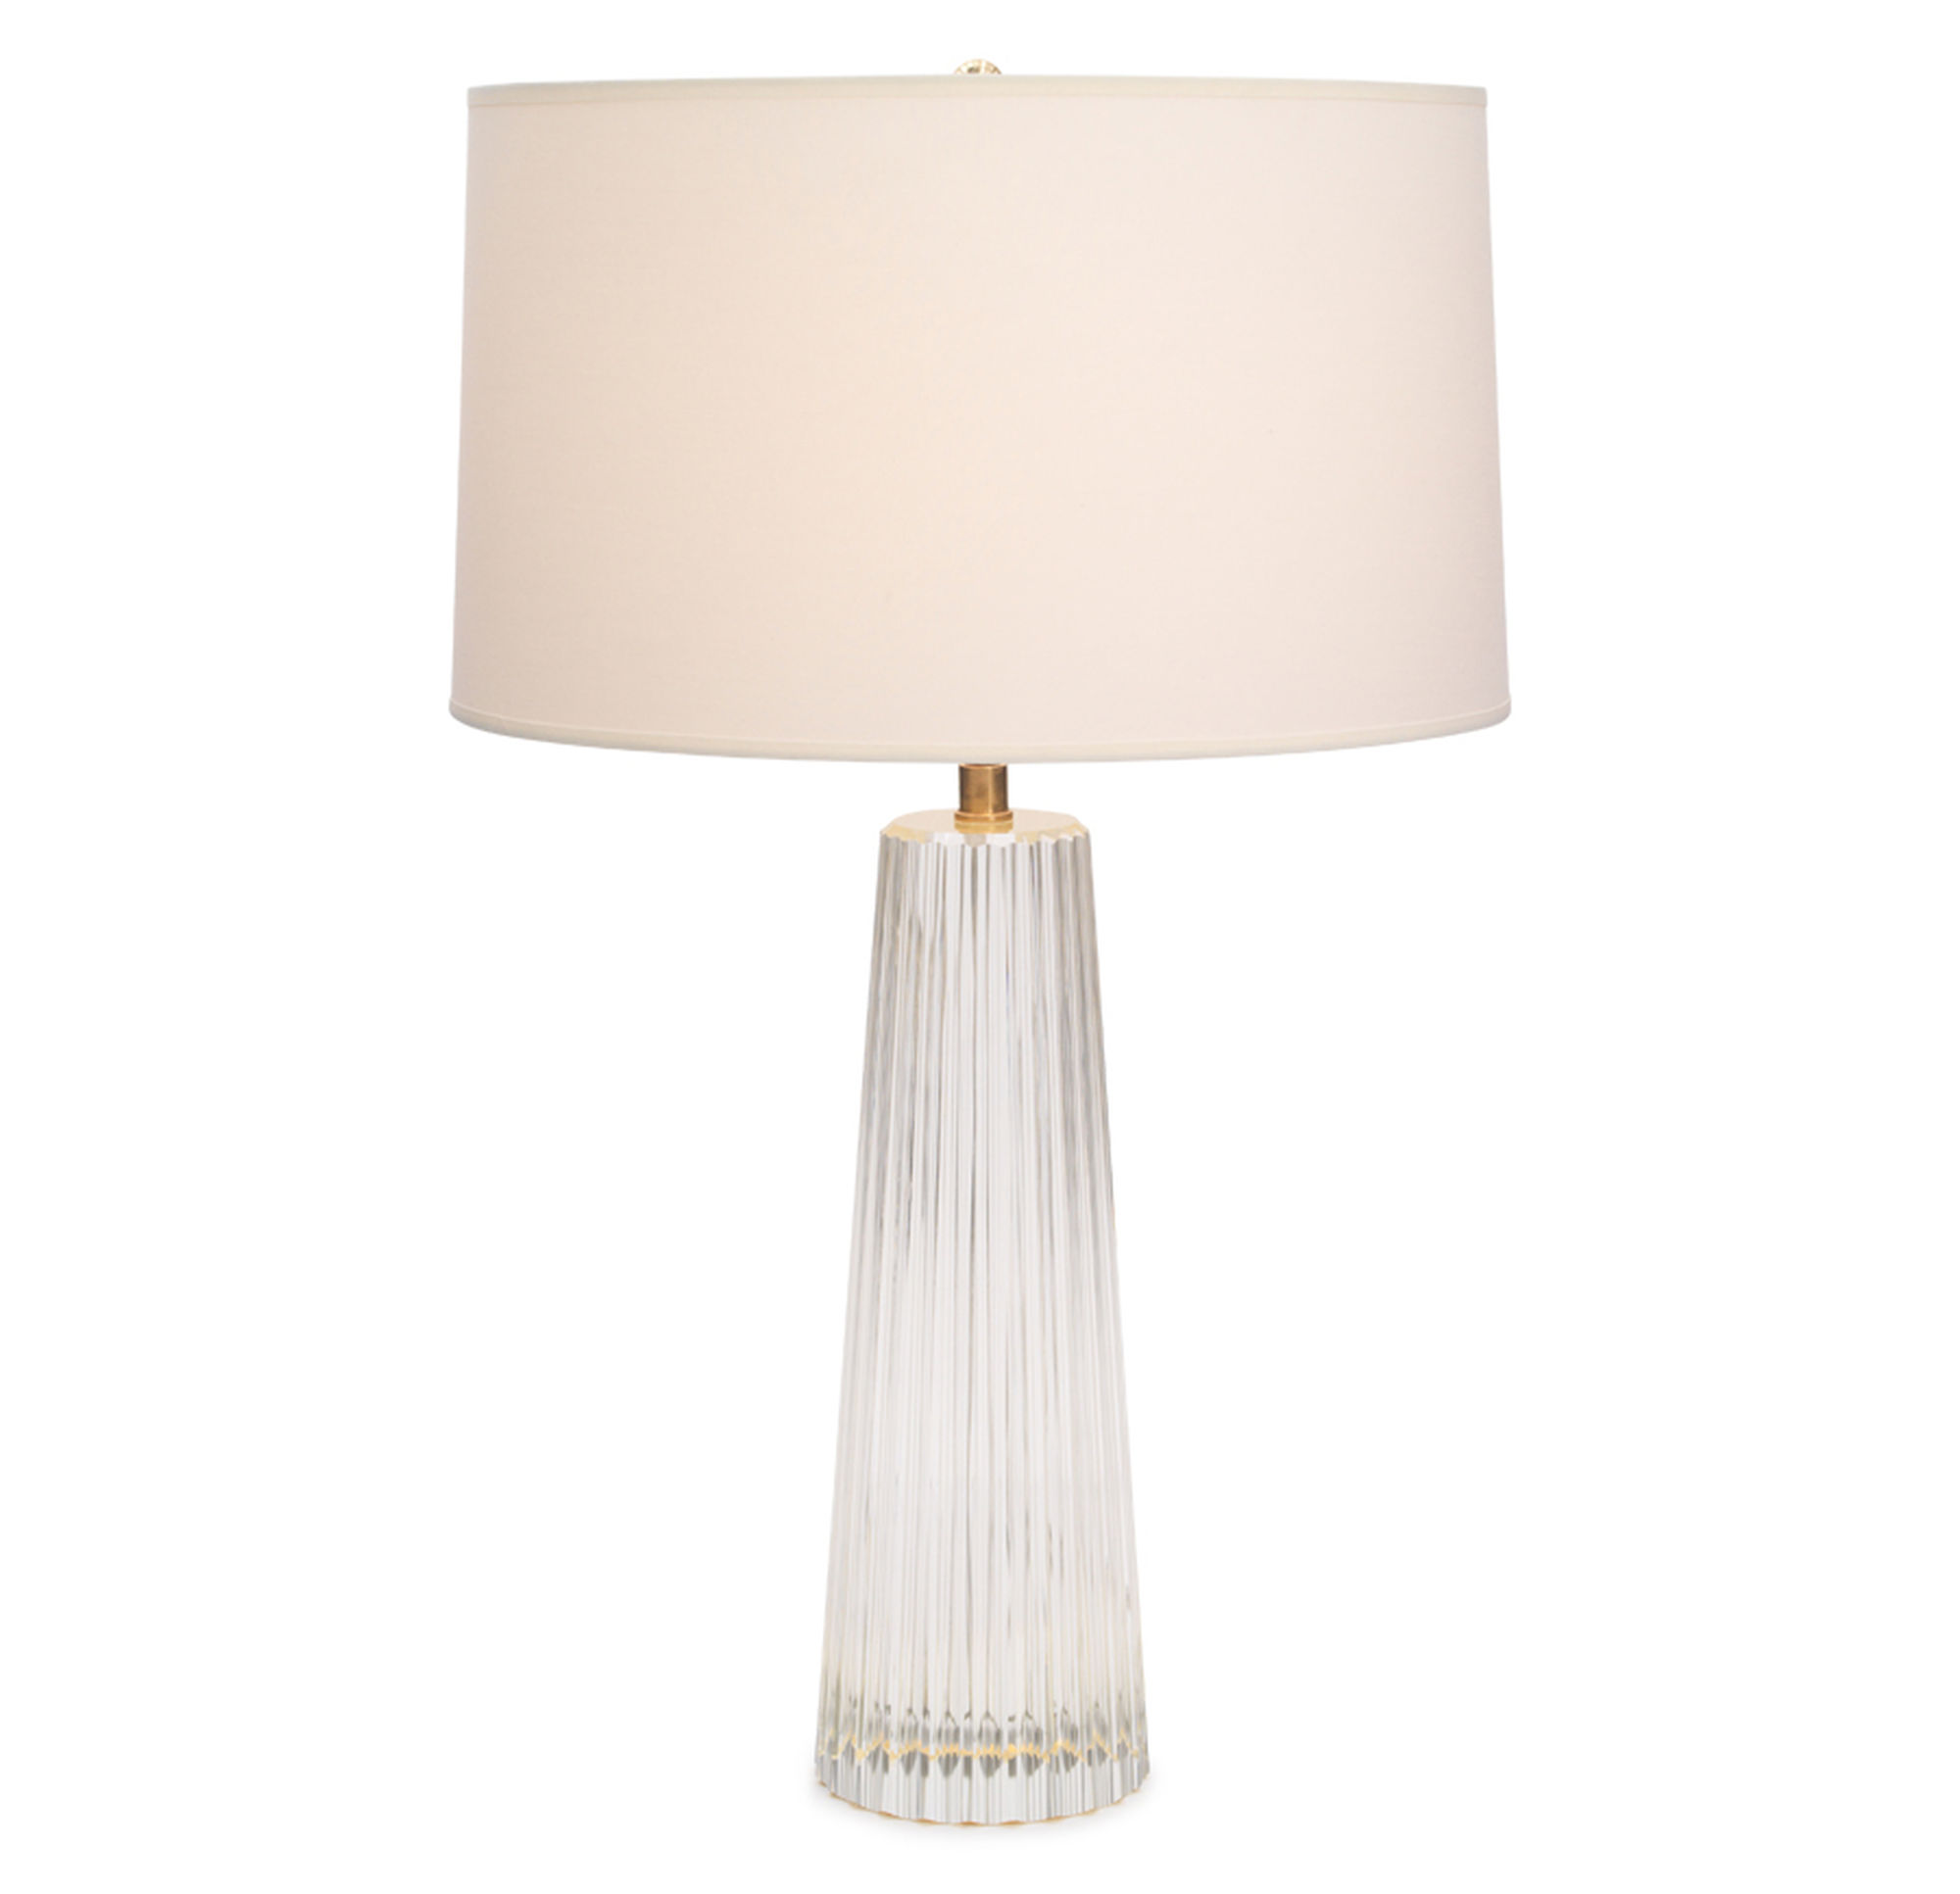 tessa table lamp hero frosted glass cylinder accent elena res farmhouse style side inch tablecloth height console behind sofa silver wall clock hardwood legs pier one ture frames